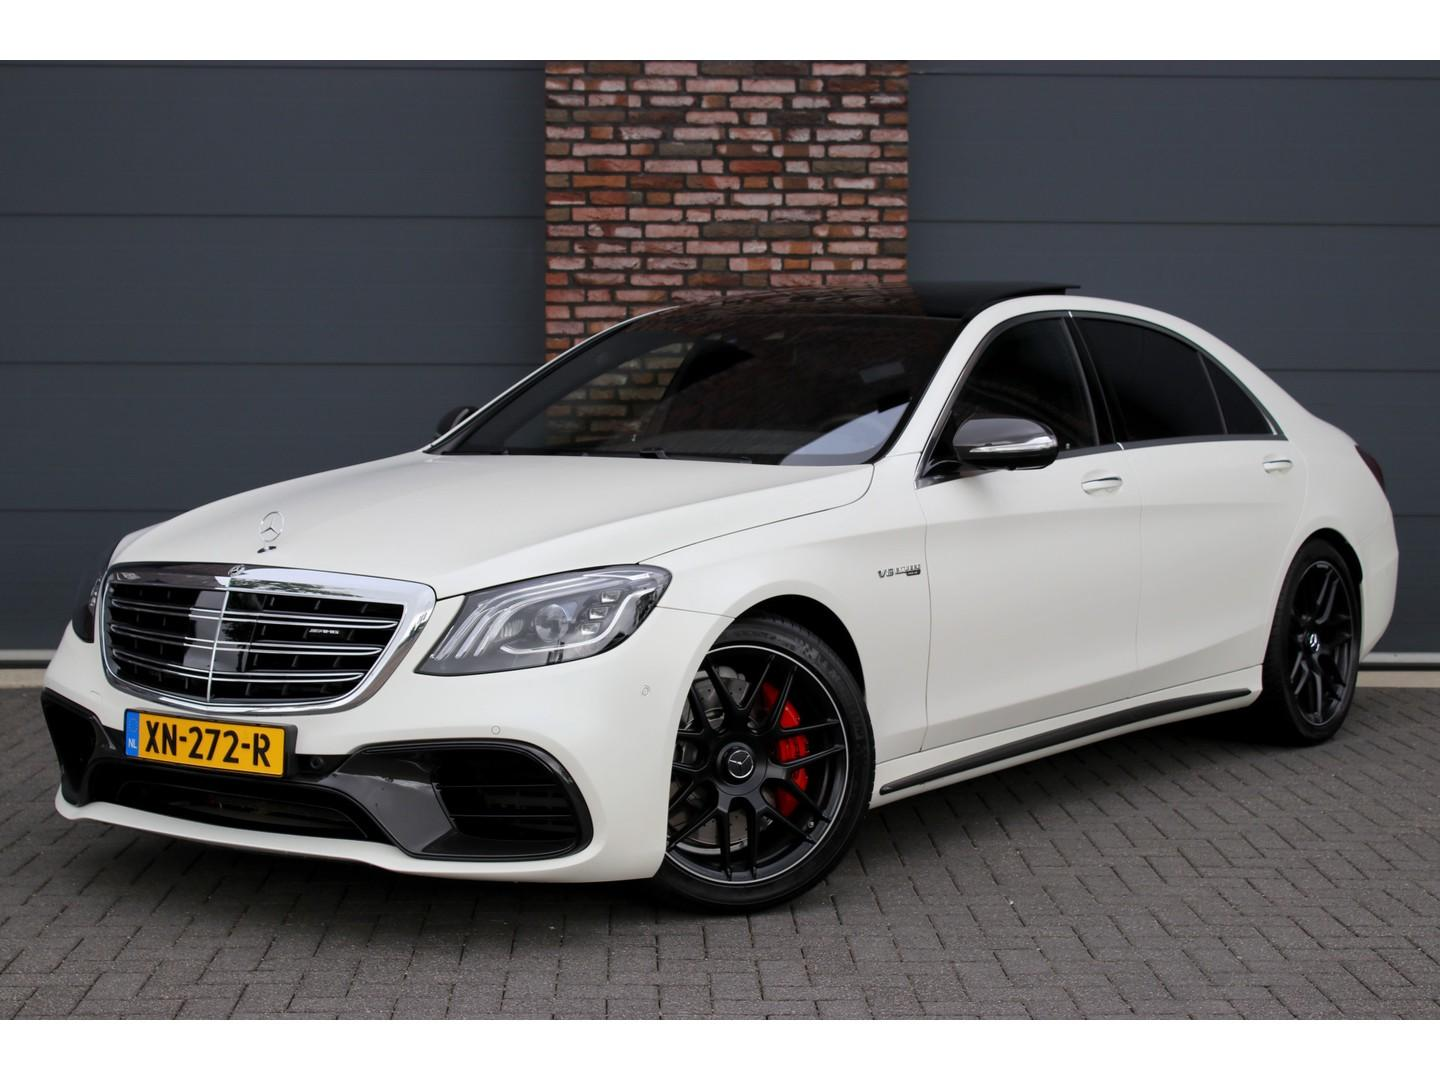 Mercedes-benz S-klasse 63 amg 4matic+ lang aut9, luchtvering, distronic+, amg carbon, panoramadak, surround view, head-up display, entertainment achter, massage, keyless-go, amg driver's package, designo kashmir wit magno, etc.